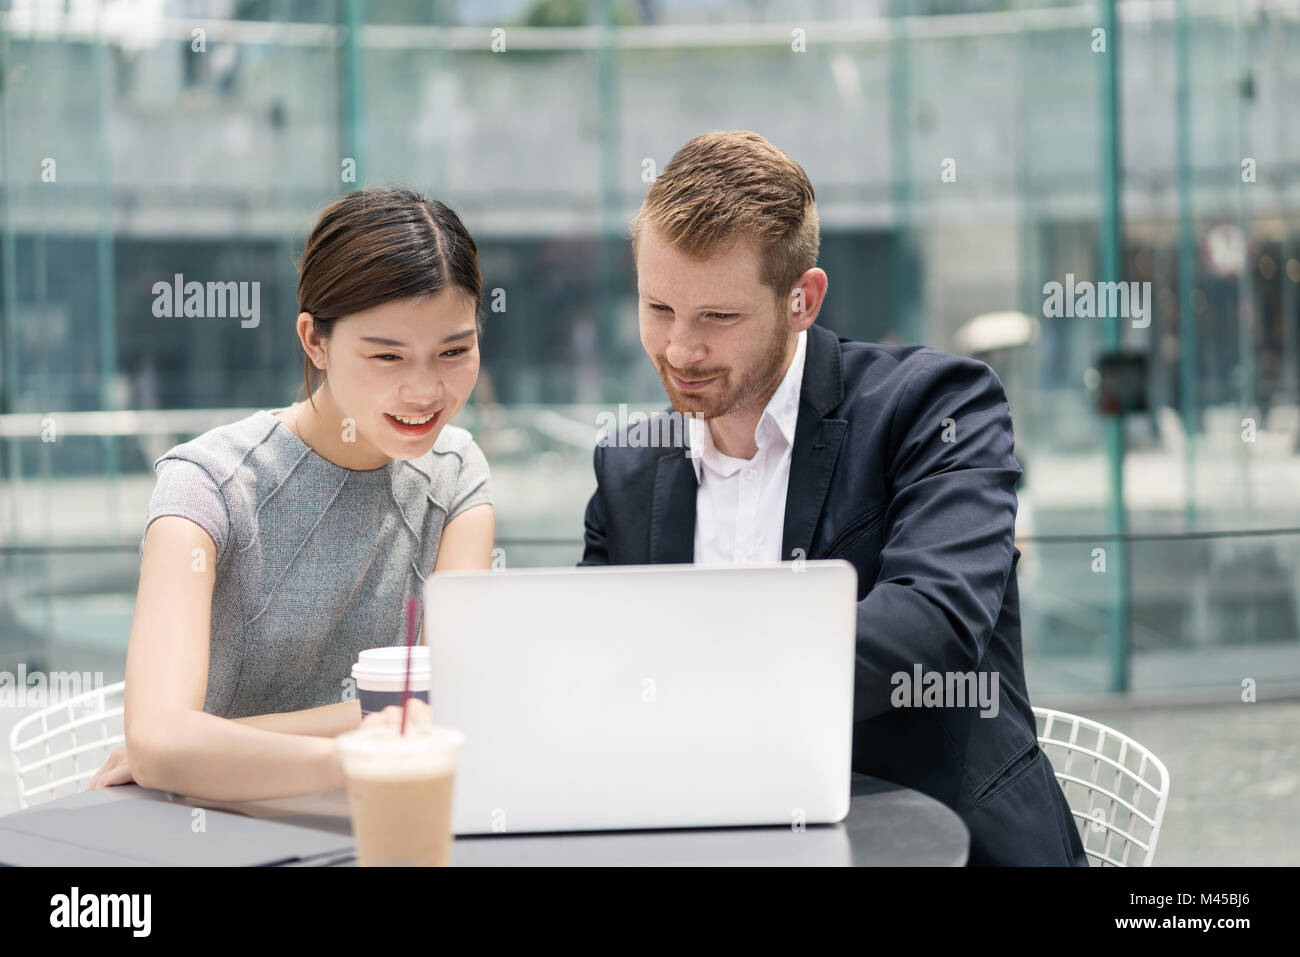 Young businessman and woman looking at laptop at sidewalk cafe meeting Stock Photo